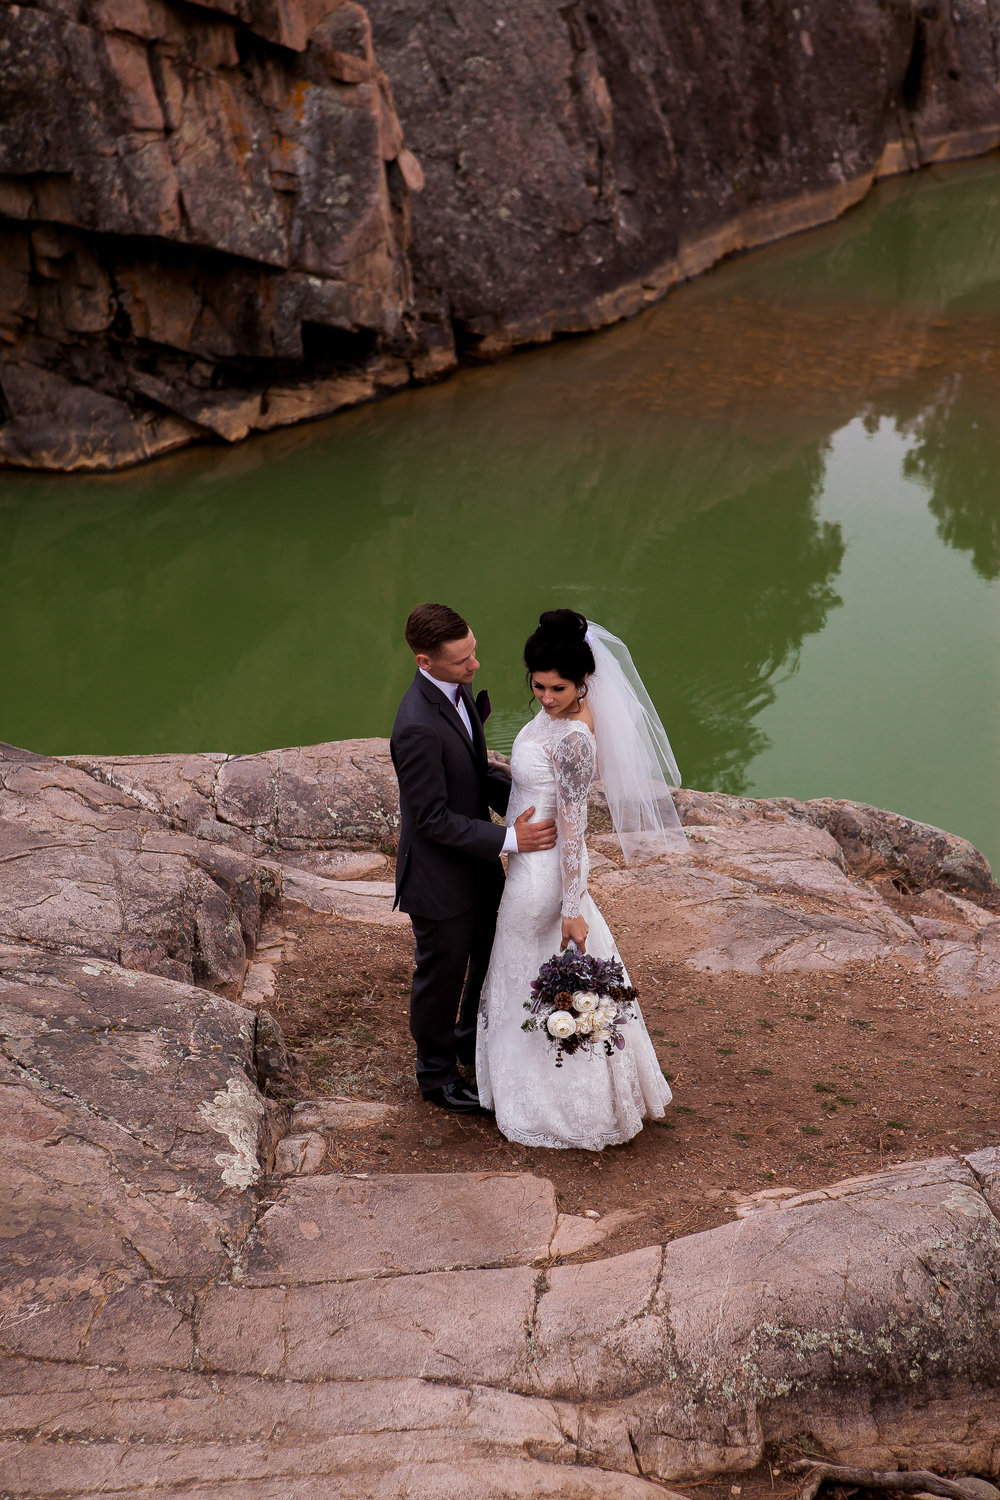 emily and justin-0618.jpg